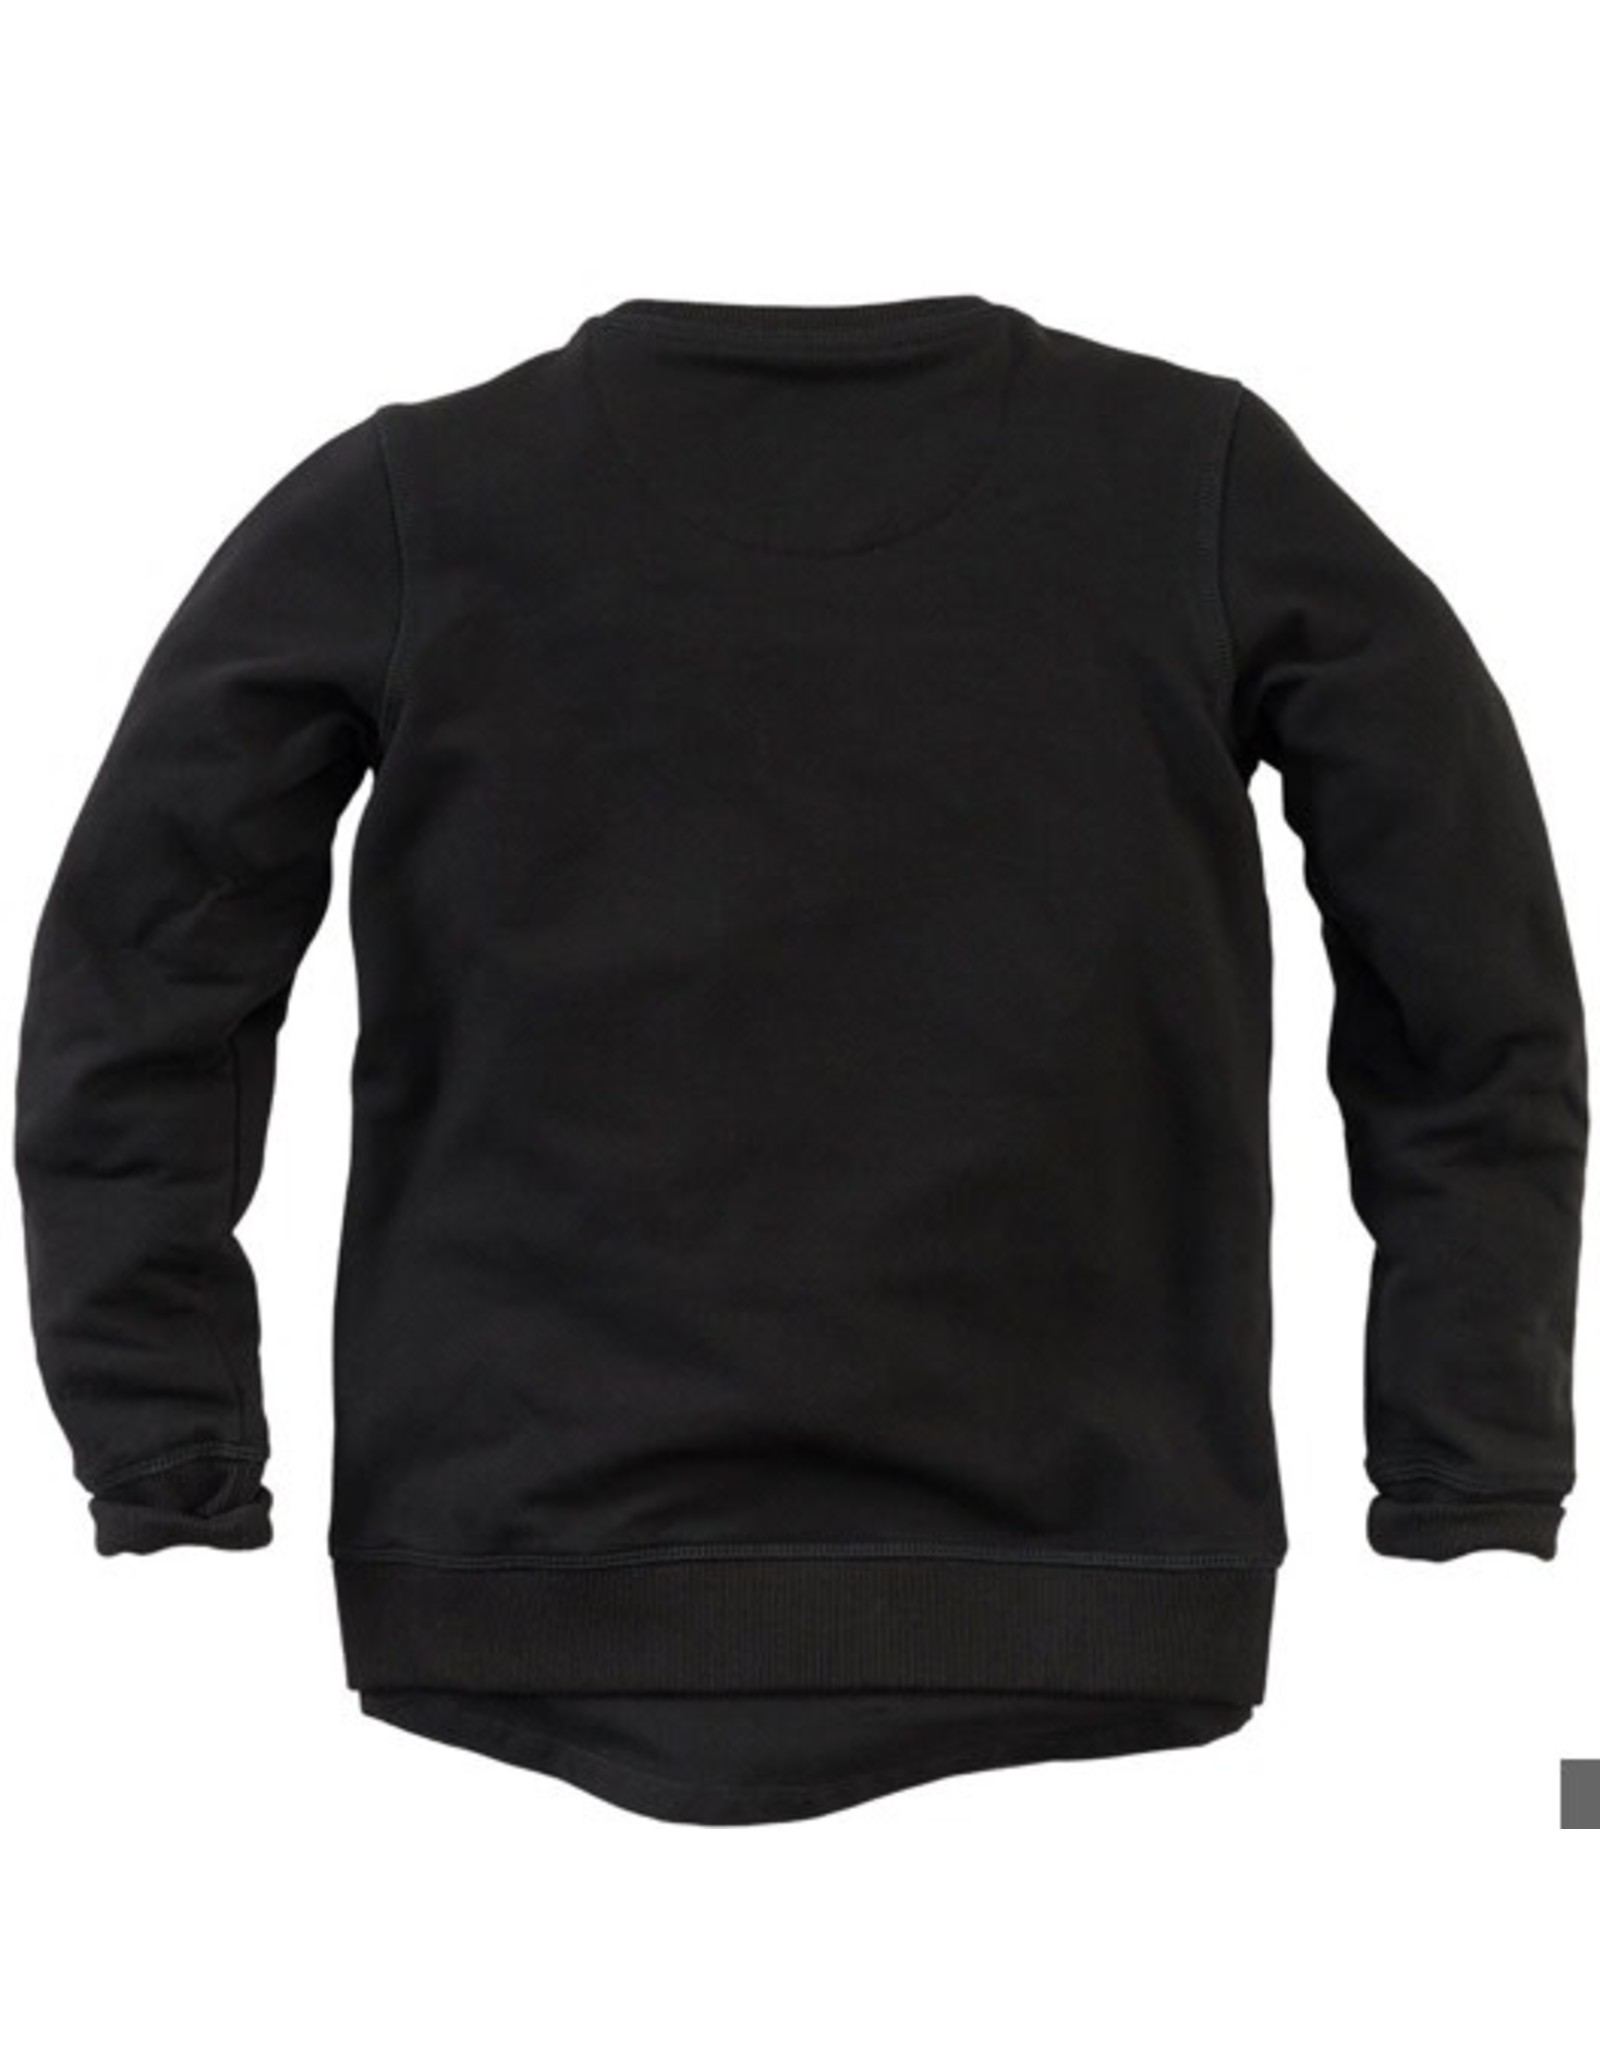 Z8 Ivar sweater